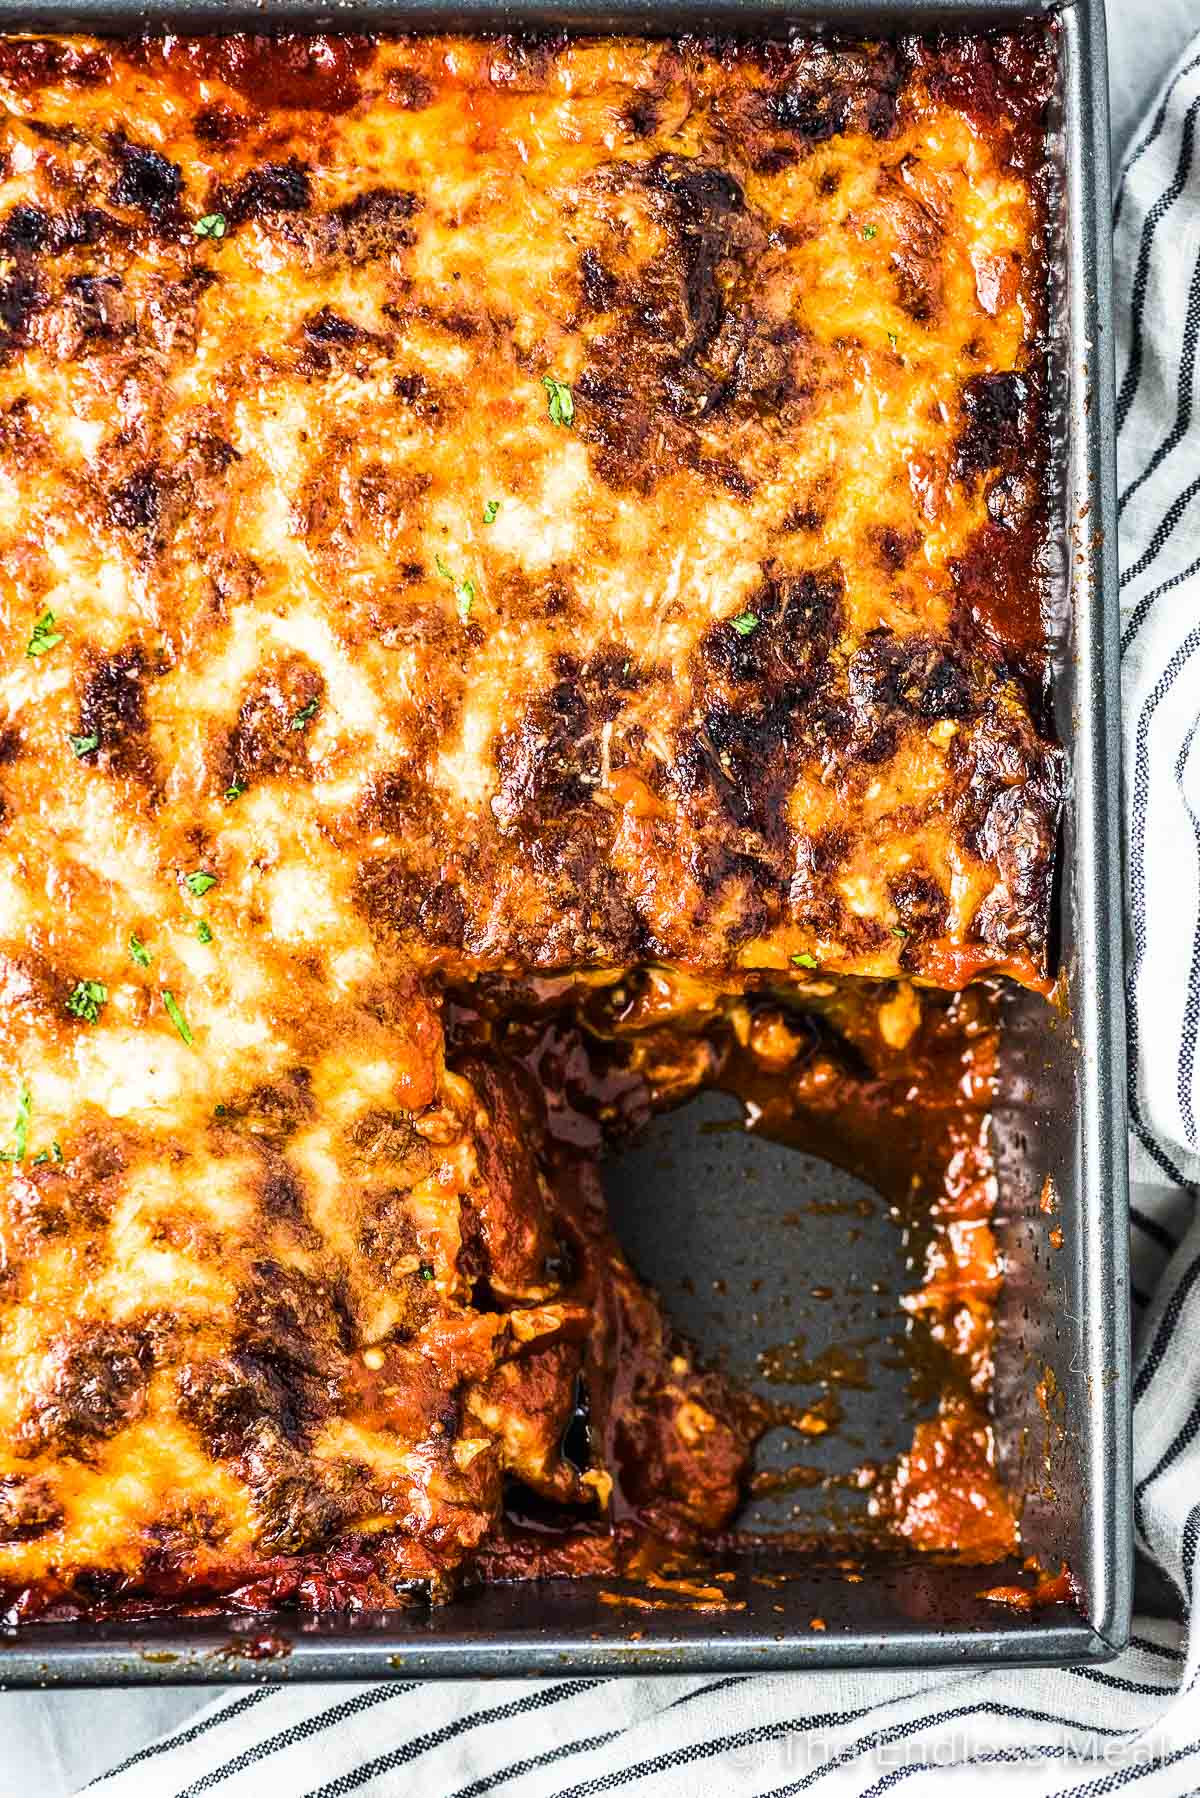 A pan of this easy eggplant parmesan recipe with one scoop taken out.